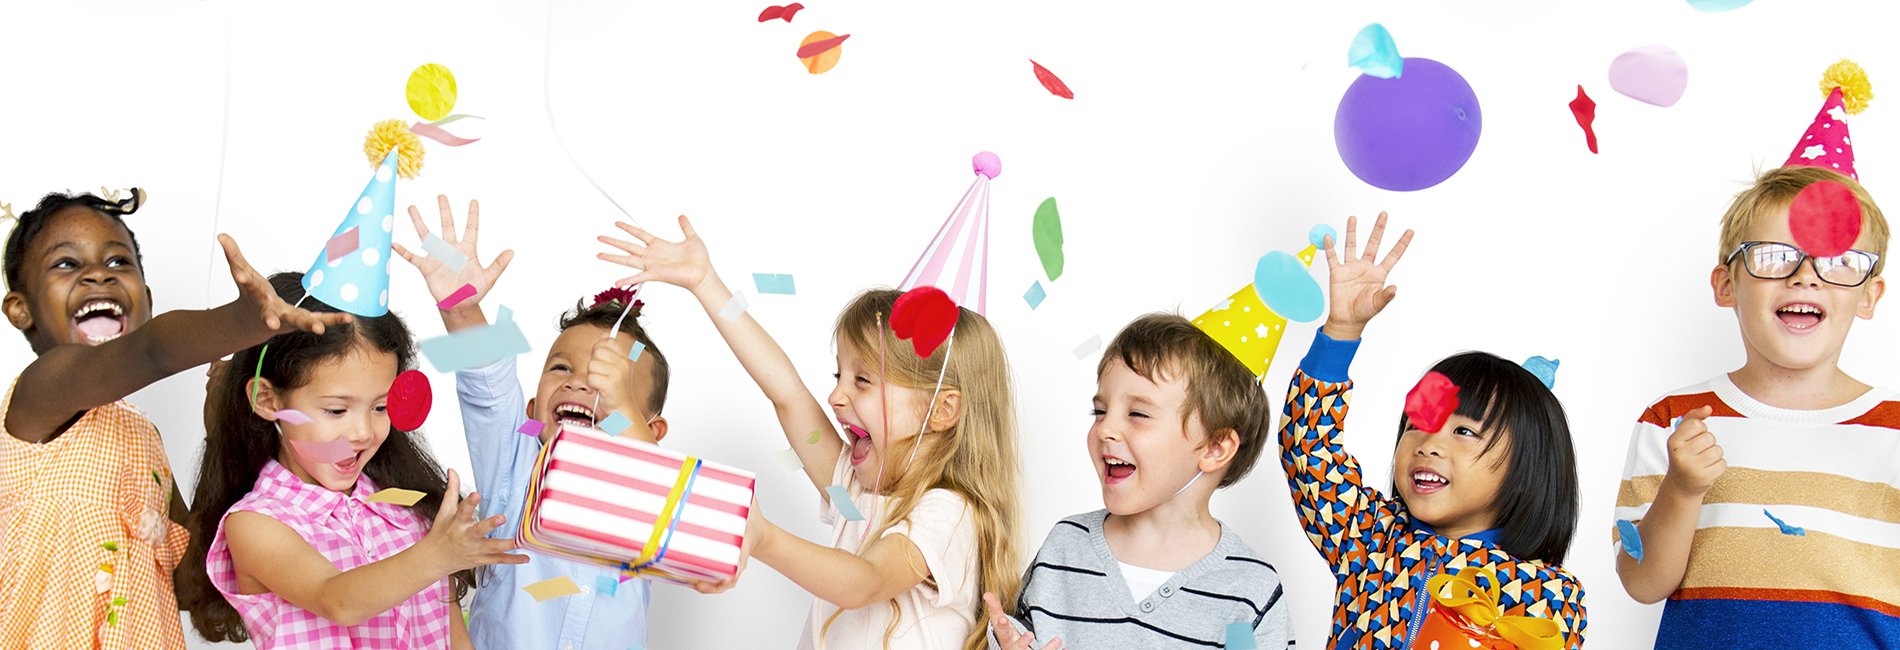 Kids celebrating at a birthday party.